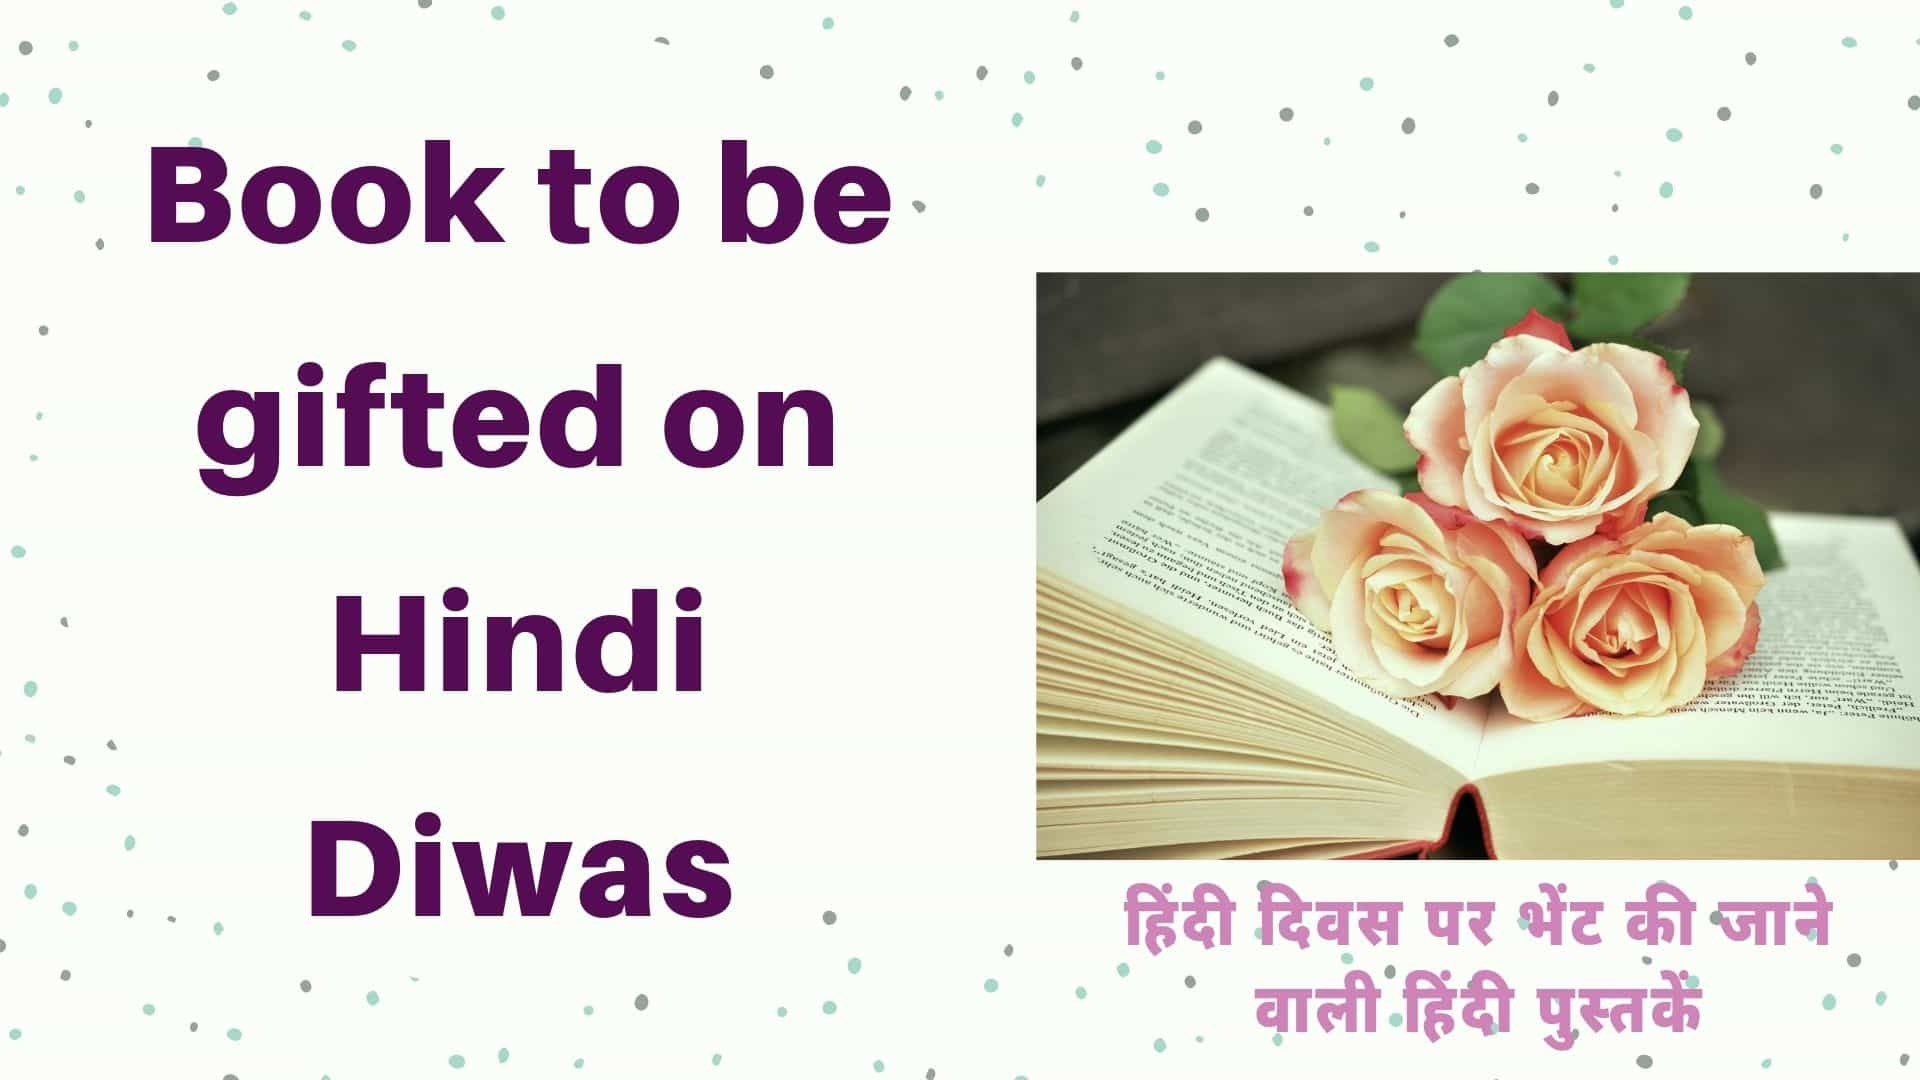 Books to be gifted on Hindi Diwas Divas Day